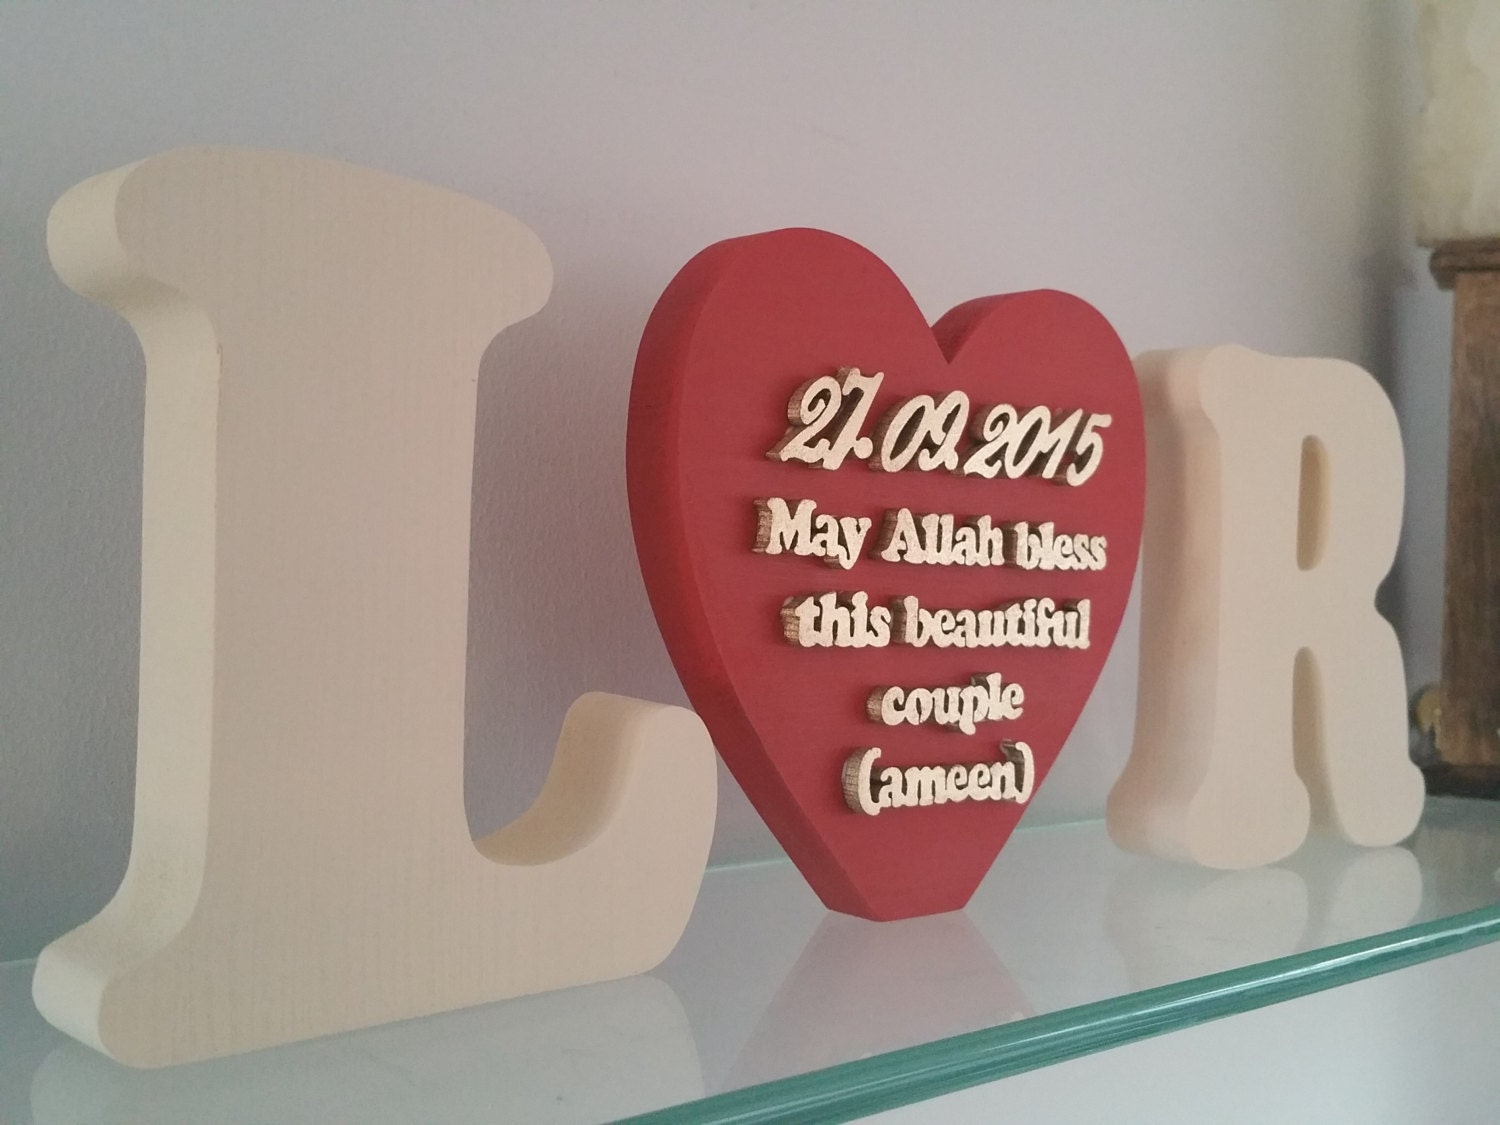 Wedding Gift For Muslim Couple Image Collections Personalised May Allah Bless This Beautiful Zoom